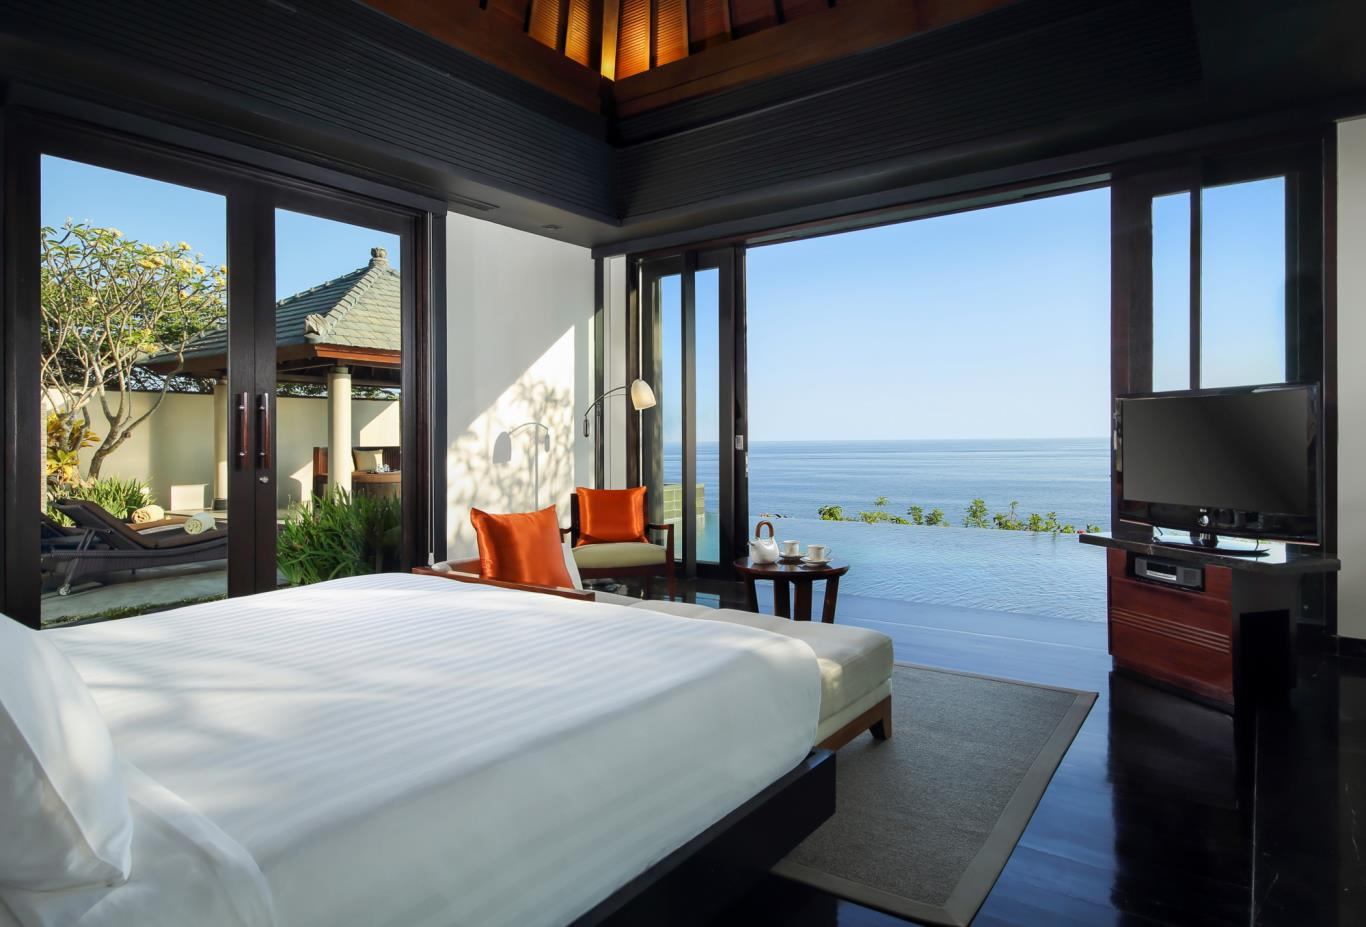 Pool Villa Cliff edge bedroom 2